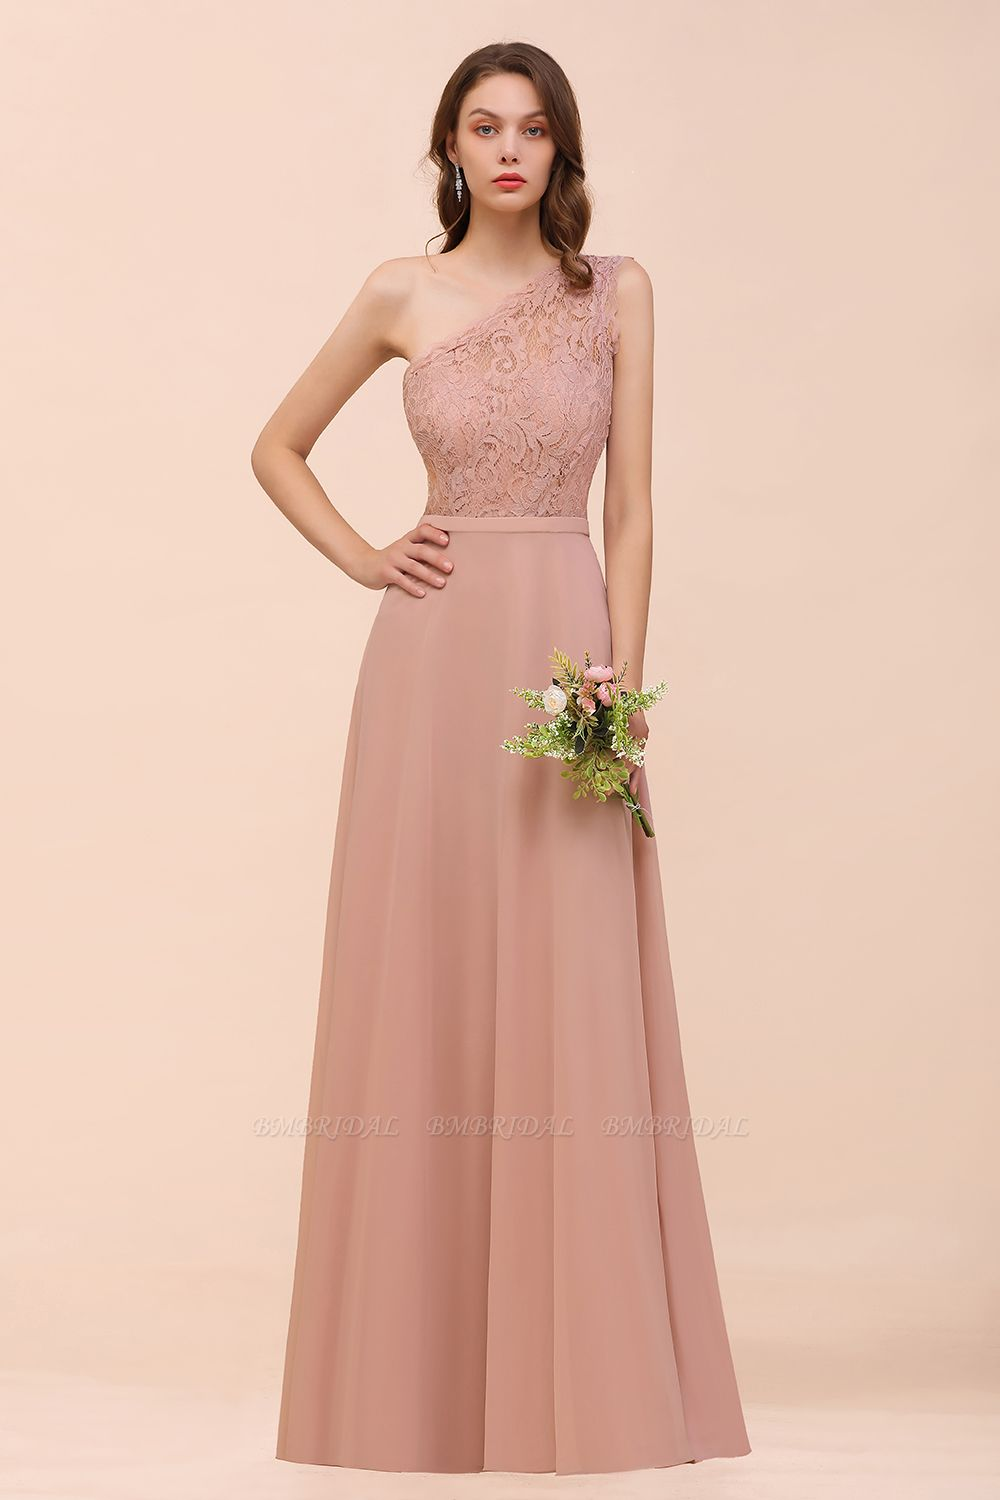 BMbridal New Arrival Dusty Rose One Shoulder Lace Long Bridesmaid Dress